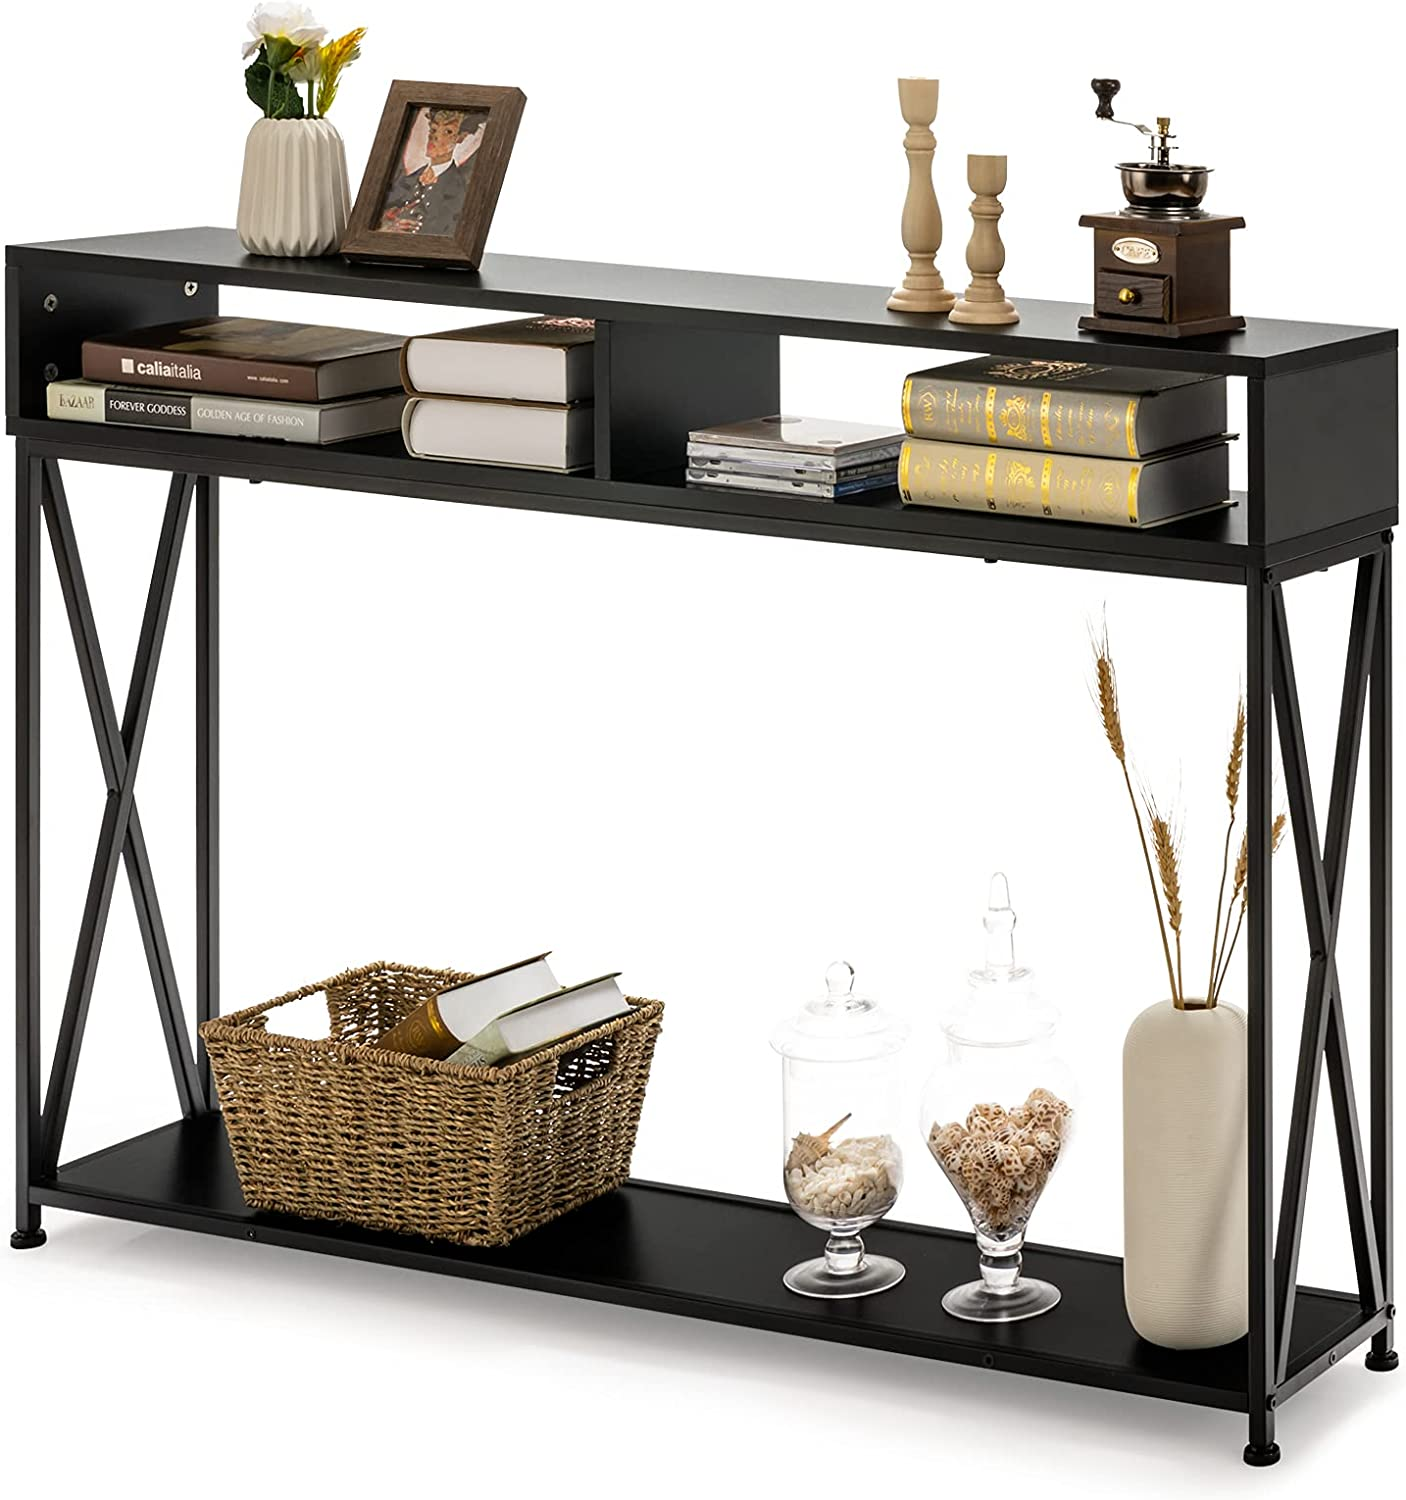 Giantex Console Max 53% OFF Table 2 Long-awaited Tier with Open Storag Shelf Sofa